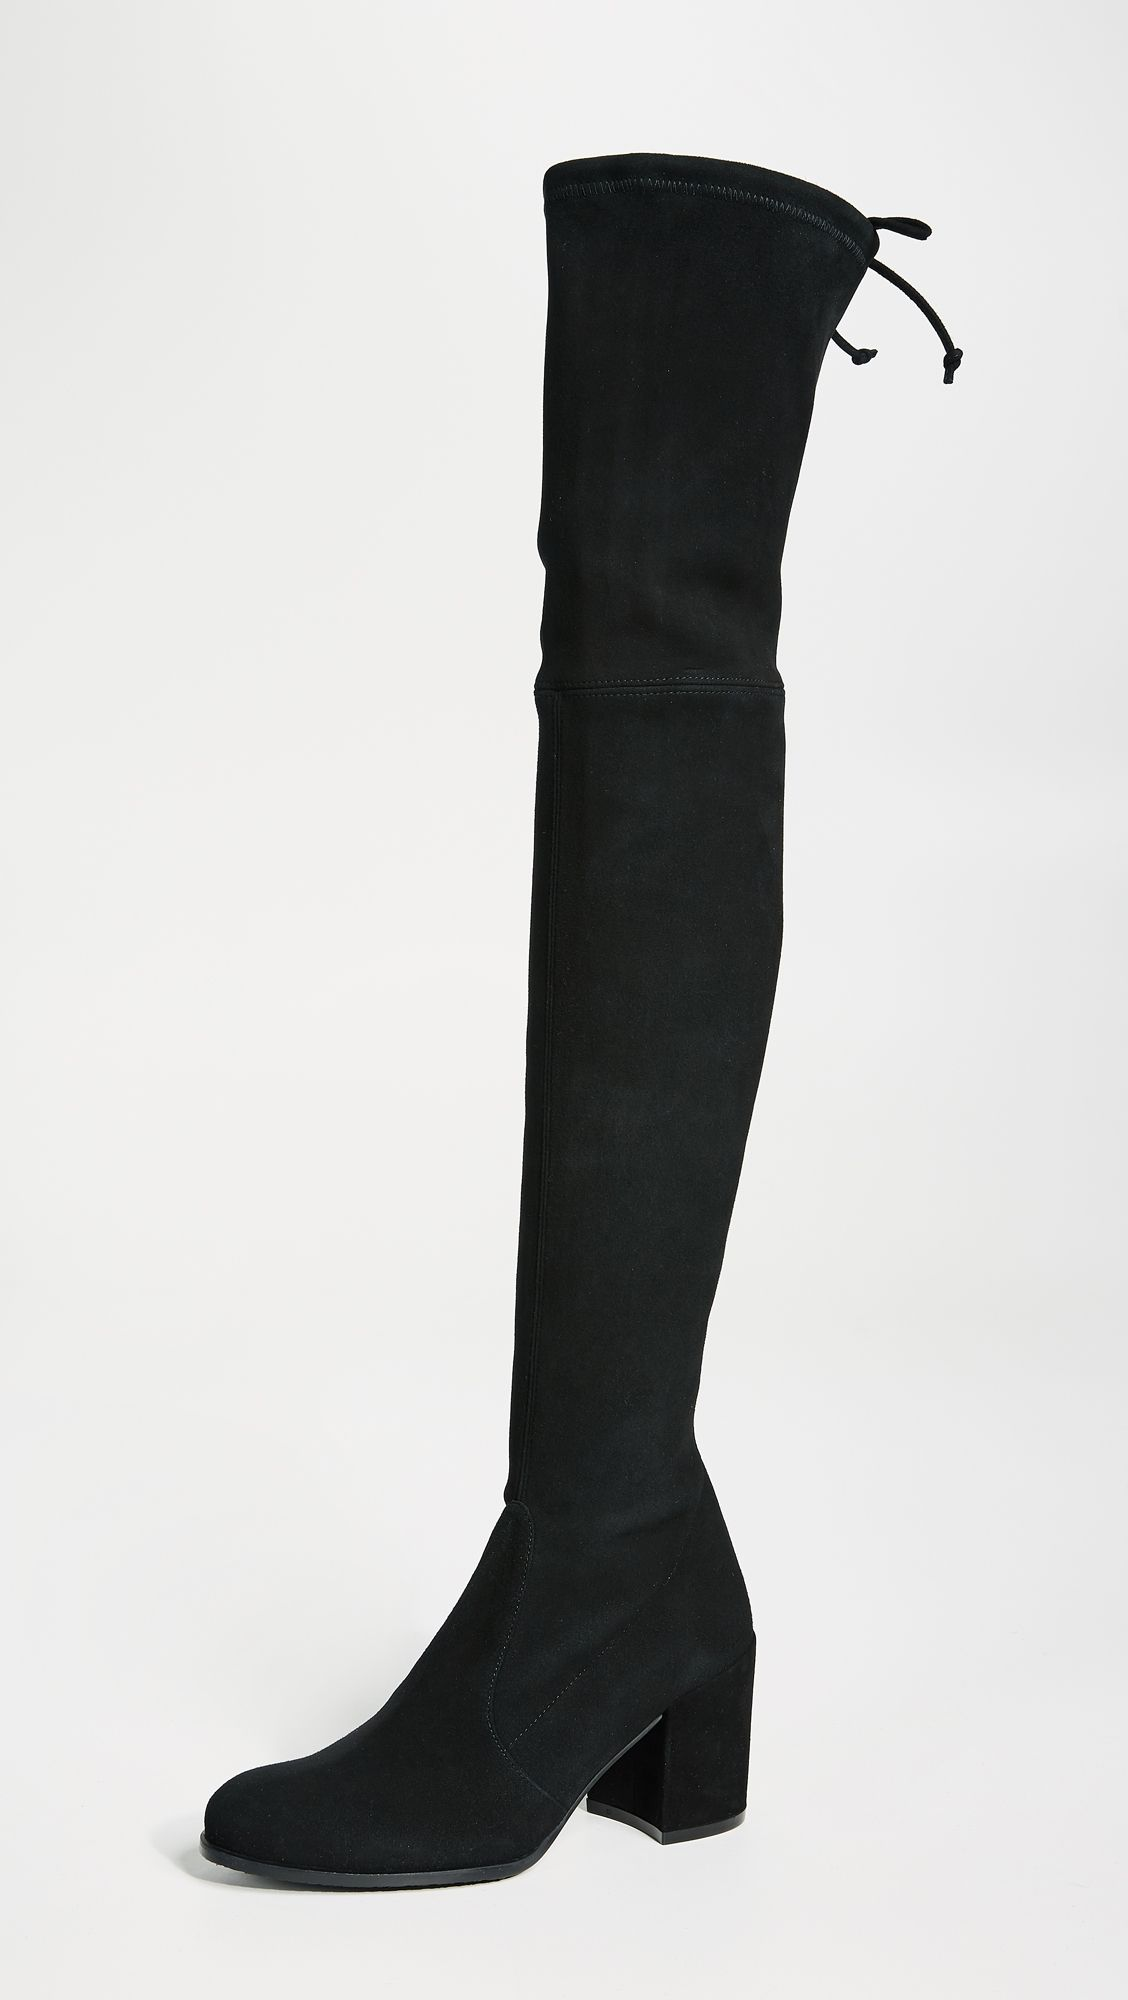 c0dc3e60bc2 Stuart Weitzman Tieland Over the Knee Boots